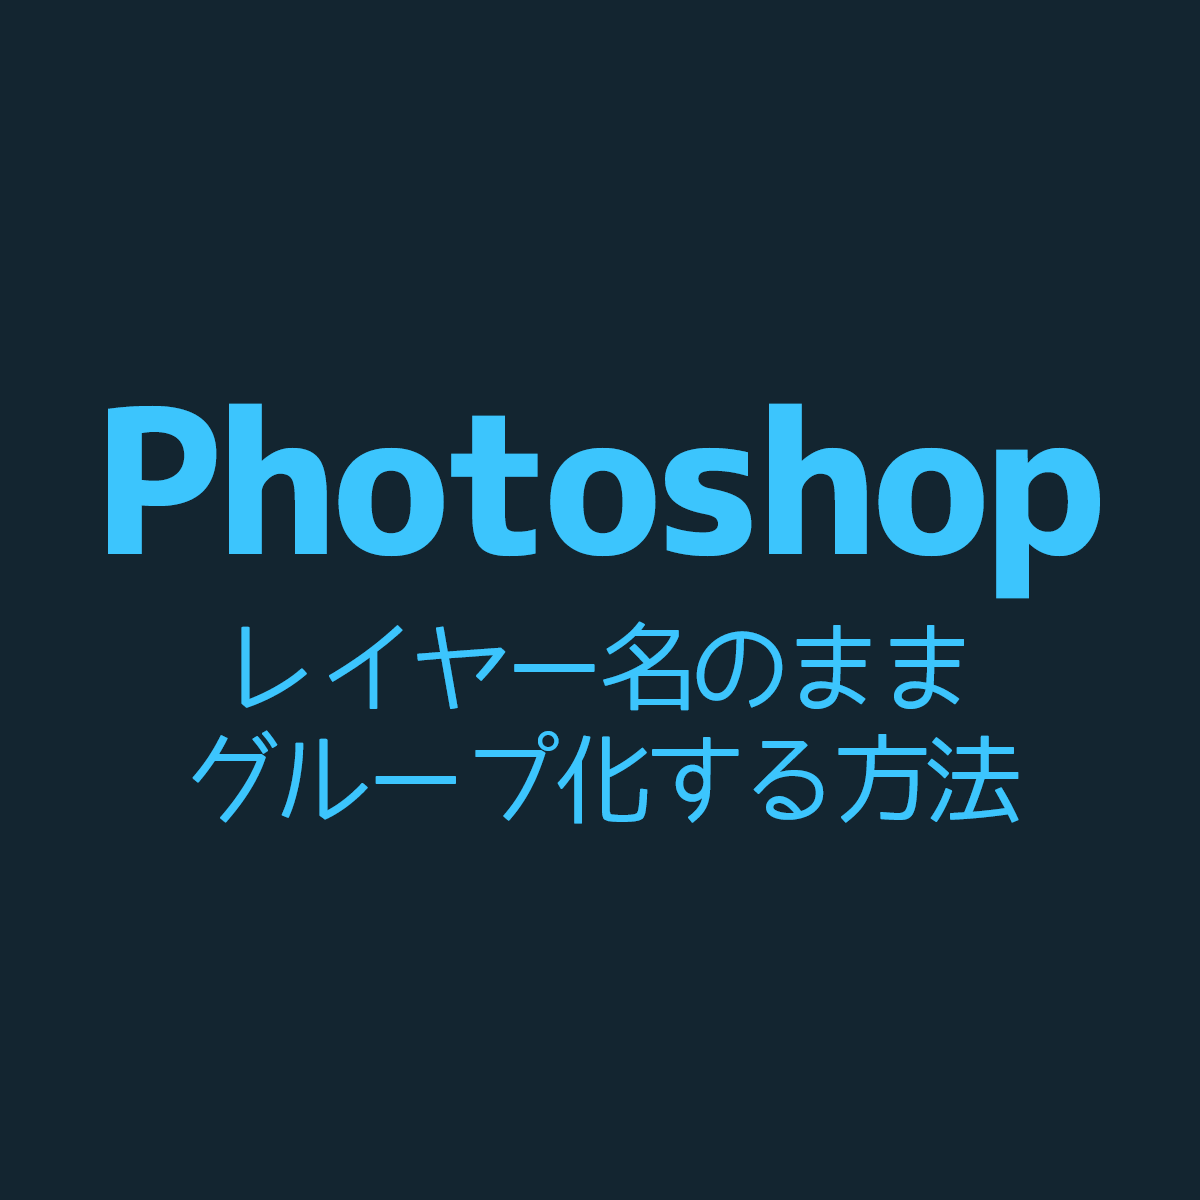 photoshop-group-layer-name